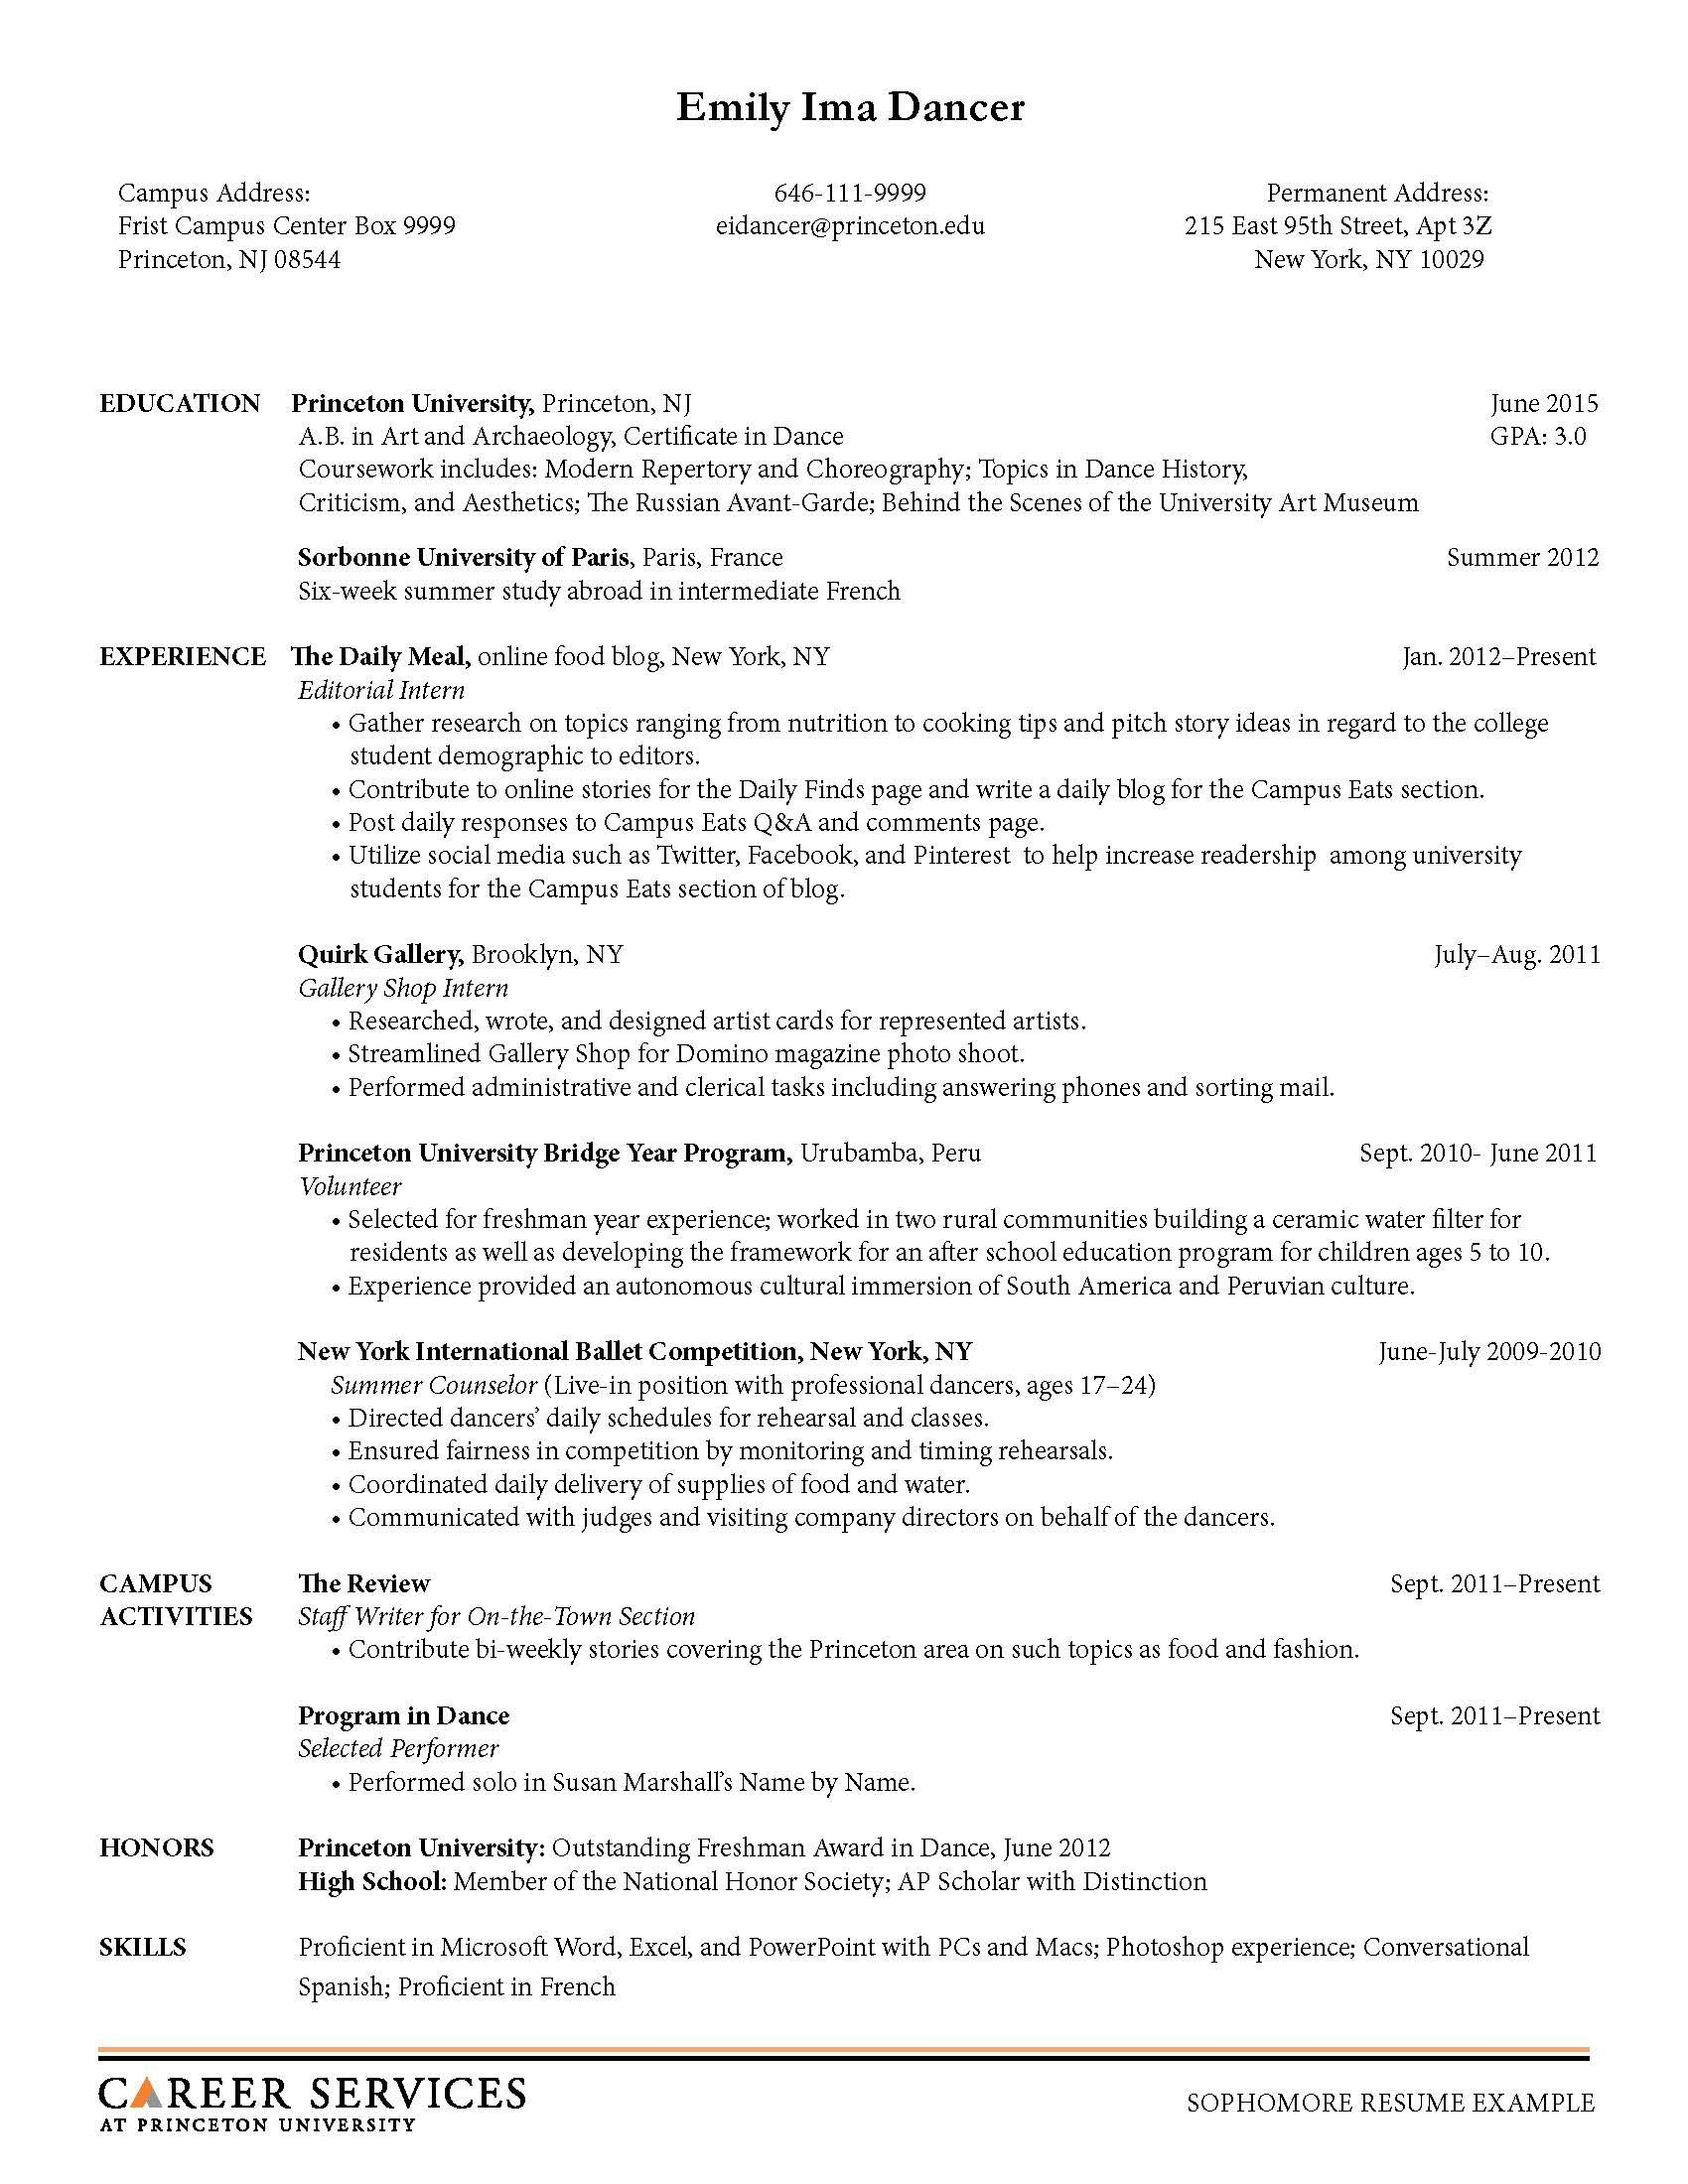 Picnictoimpeachus  Unique Sample Resume Resume And Career On Pinterest With Excellent Patient Service Representative Resume Besides Cocktail Server Resume Furthermore Resume Work Experience Order With Divine Library Resume Also Professional Profile On Resume In Addition Additional Skills To Put On A Resume And Resume Examples  As Well As Resume Build Additionally Professional Resume Cover Letter From Pinterestcom With Picnictoimpeachus  Excellent Sample Resume Resume And Career On Pinterest With Divine Patient Service Representative Resume Besides Cocktail Server Resume Furthermore Resume Work Experience Order And Unique Library Resume Also Professional Profile On Resume In Addition Additional Skills To Put On A Resume From Pinterestcom